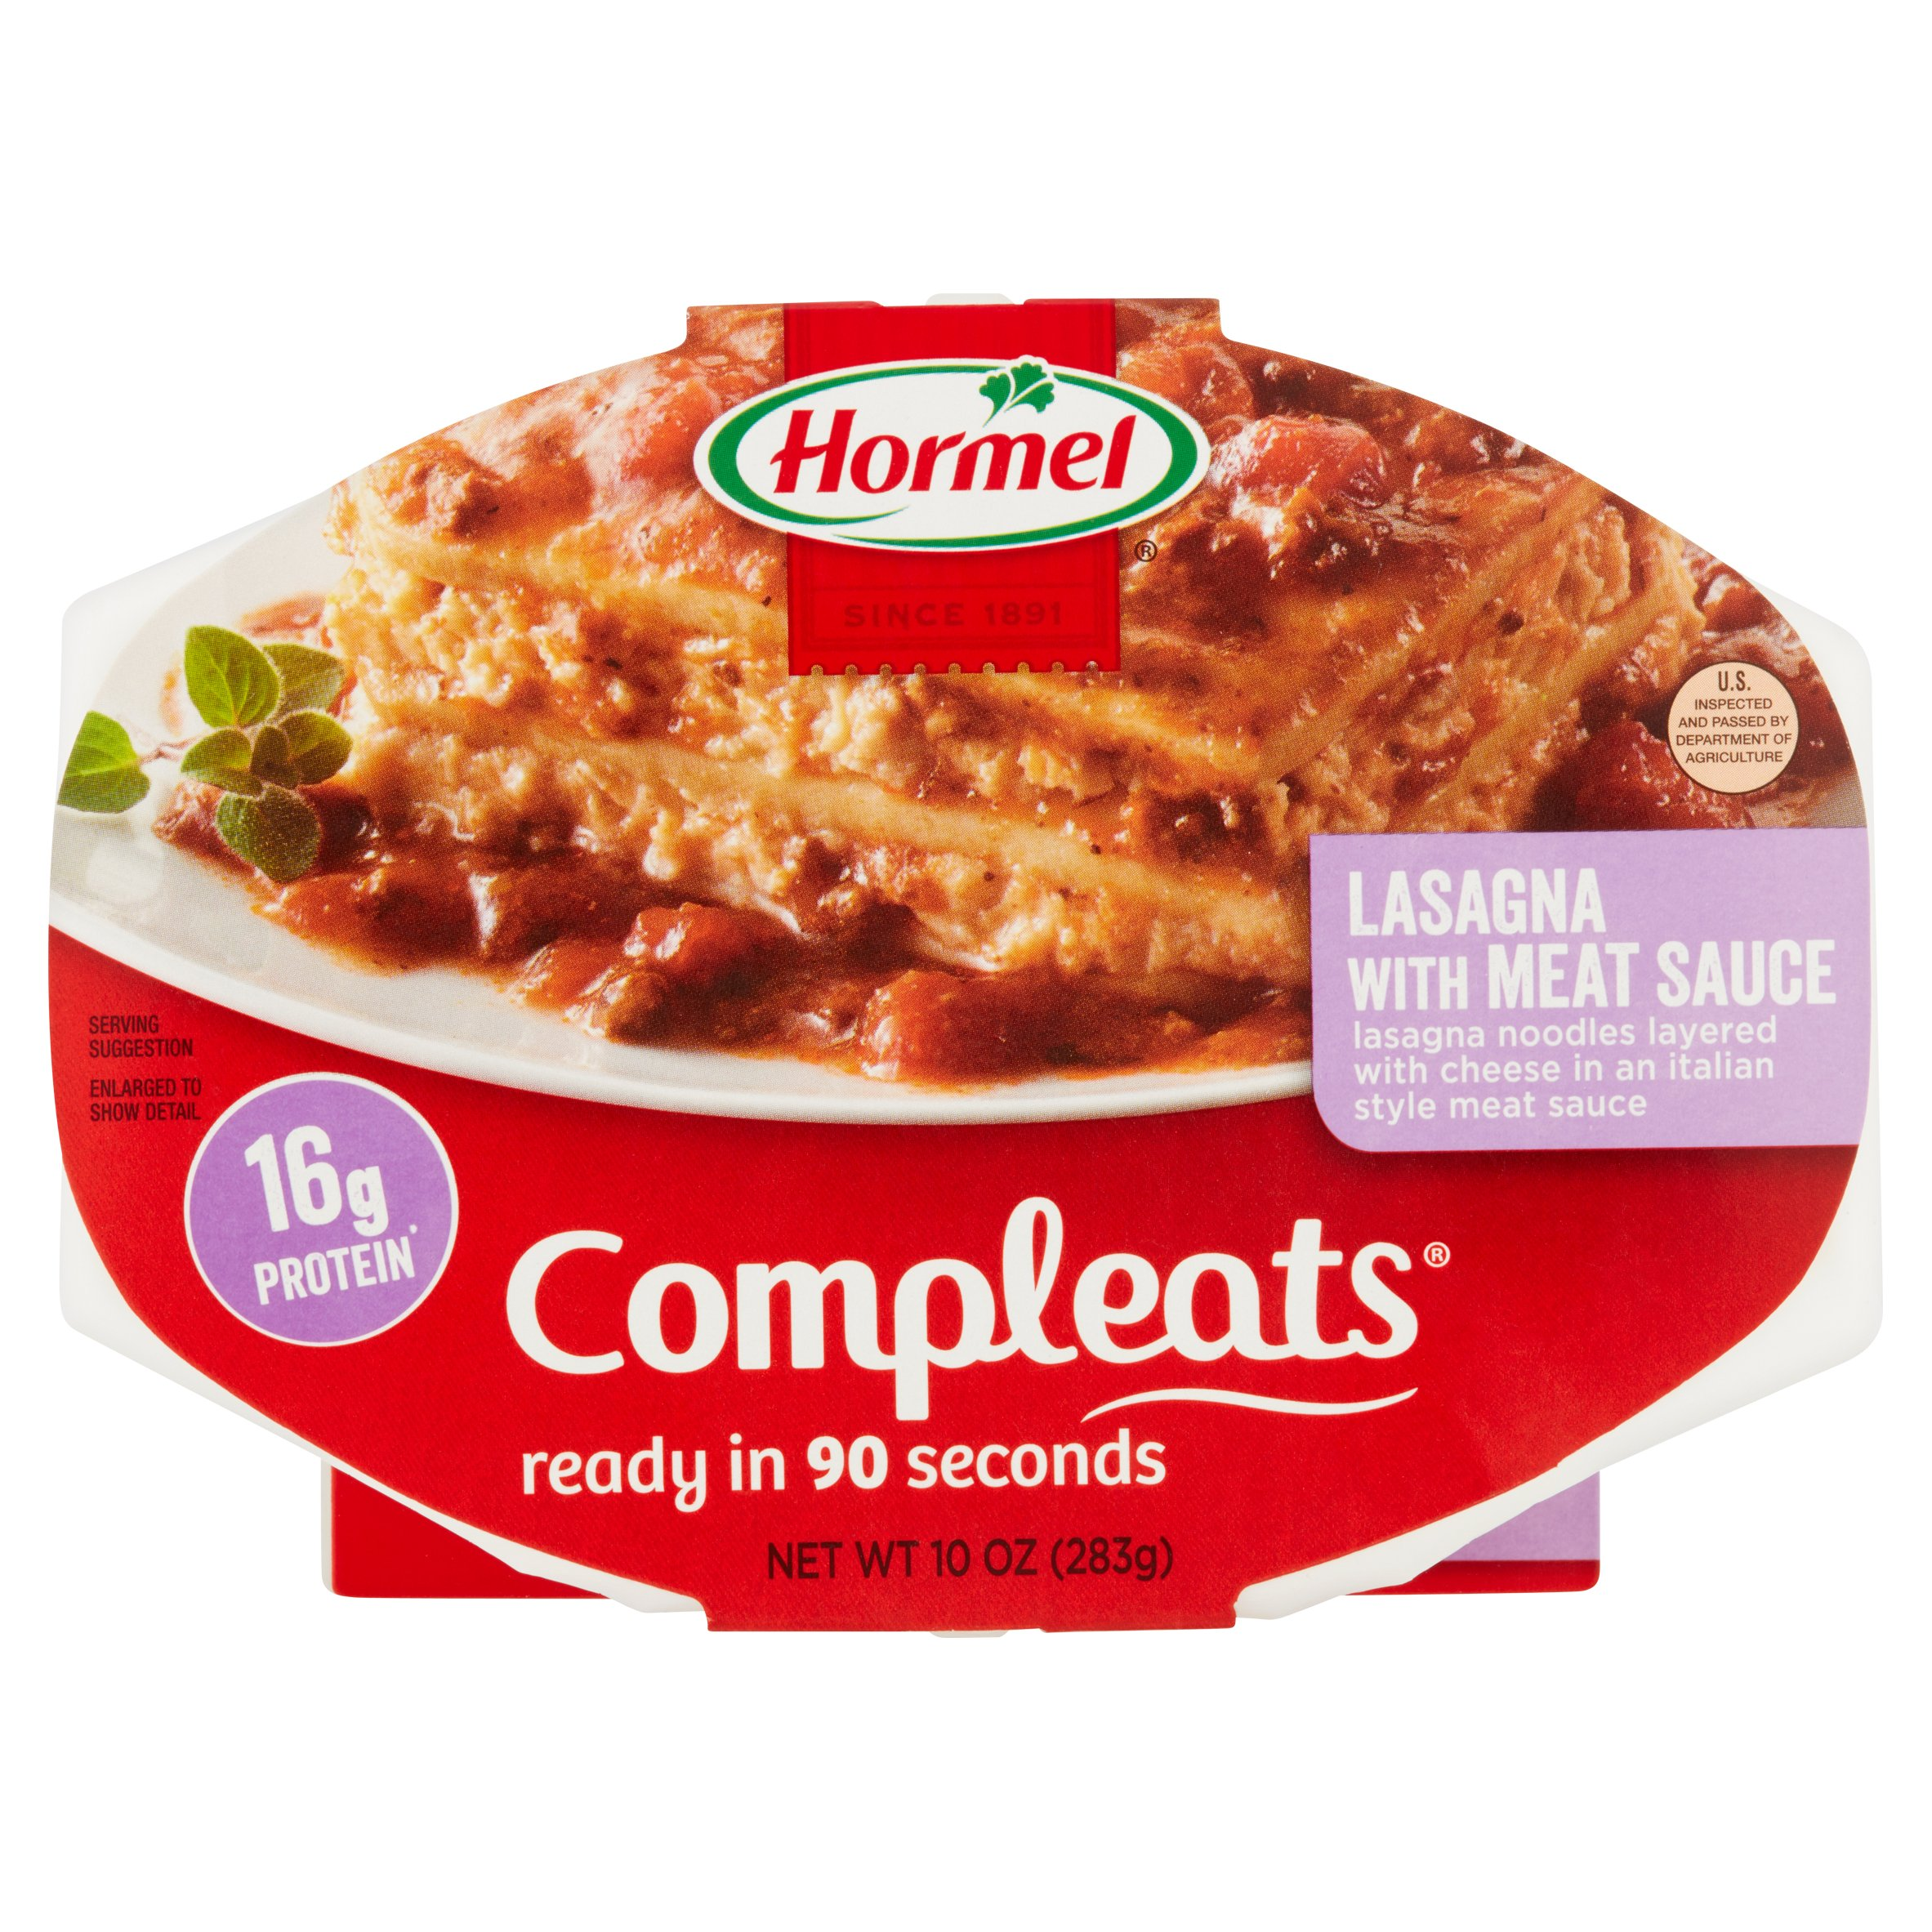 Hormel Compleats Lasagna with Meat Sauce 10 oz Sleeve